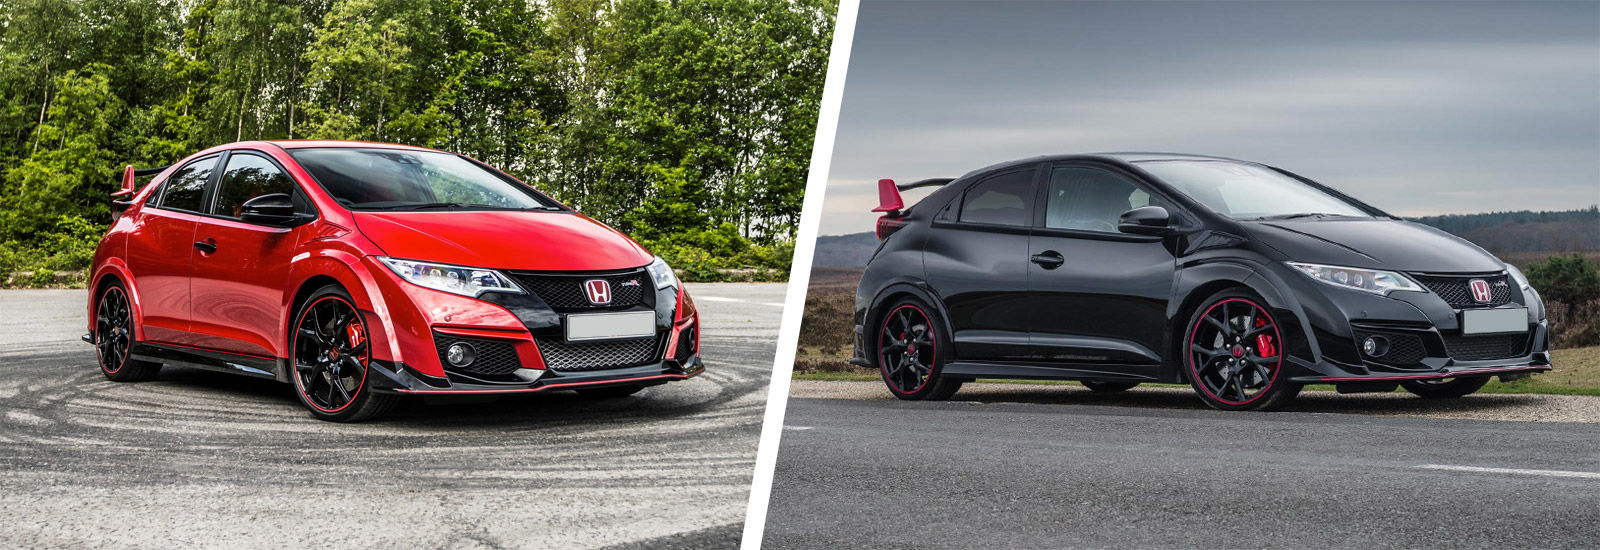 honda civic type r black edition – complete guide | carwow